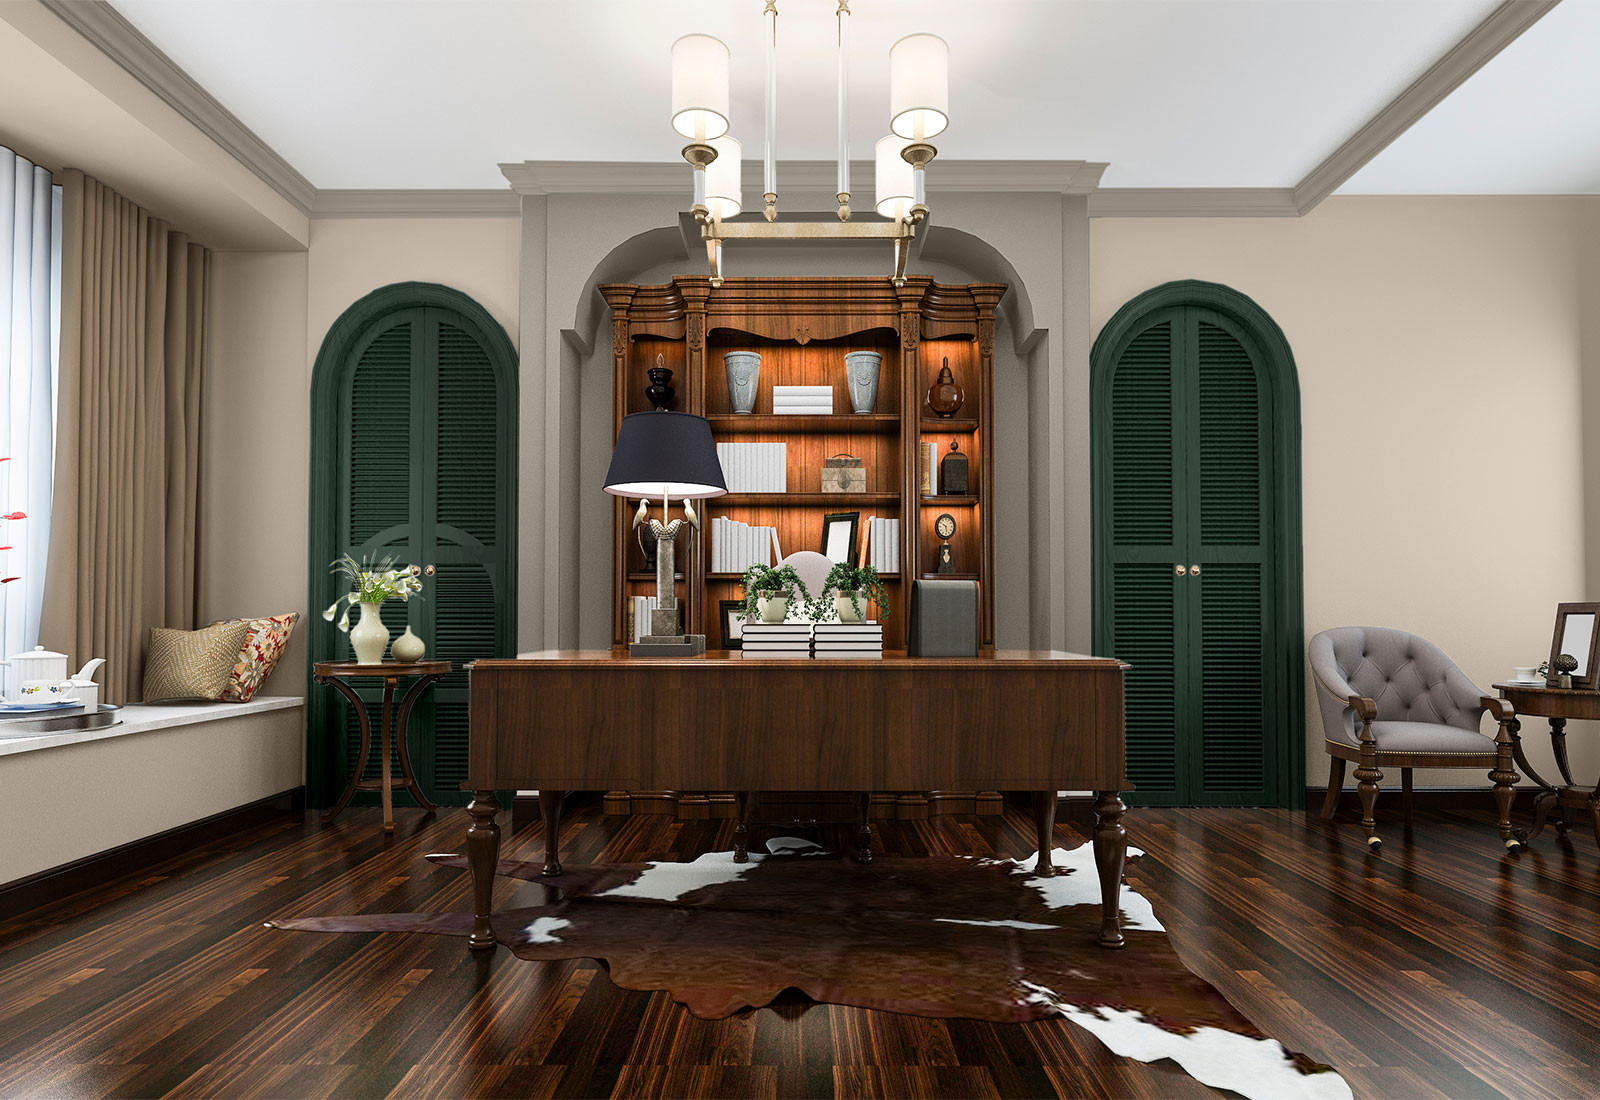 Best ideas about Sherwin Williams Paint Colors 2019 . Save or Pin 2019 Paint Color Forecast from Sherwin Williams Now.